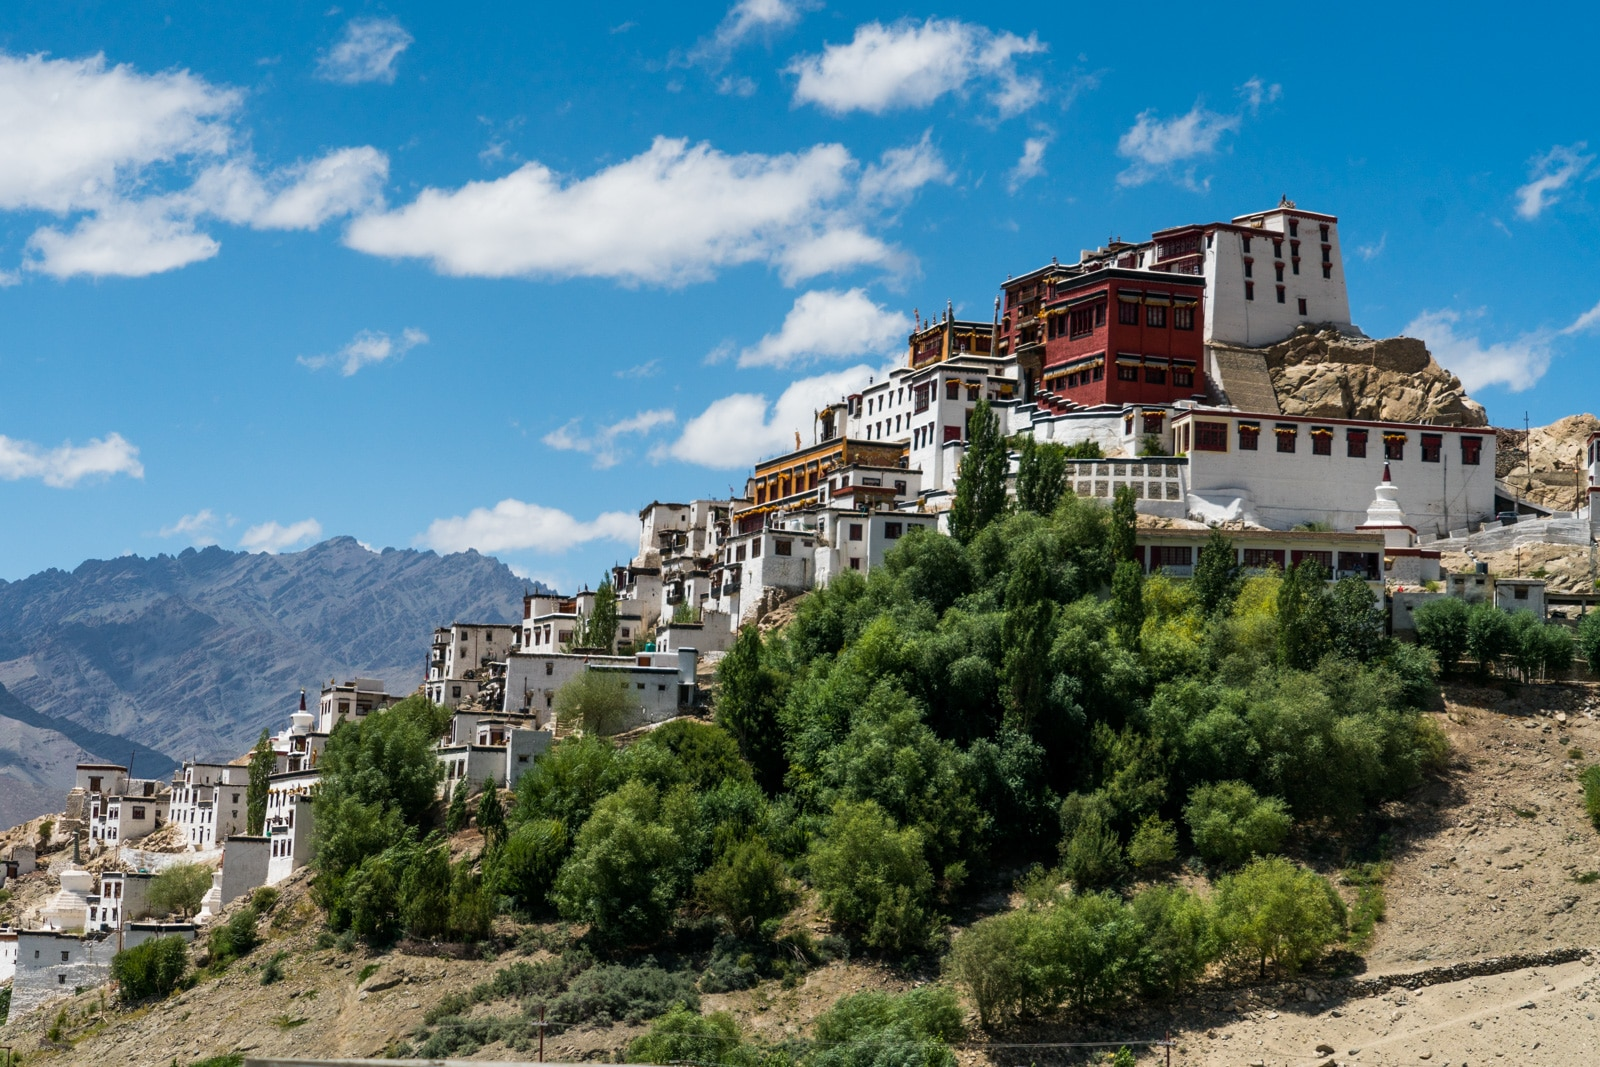 Hitchhiking the Leh - Manali highway - Thiksey Buddhist monastery - Lost With Purpose travel blog